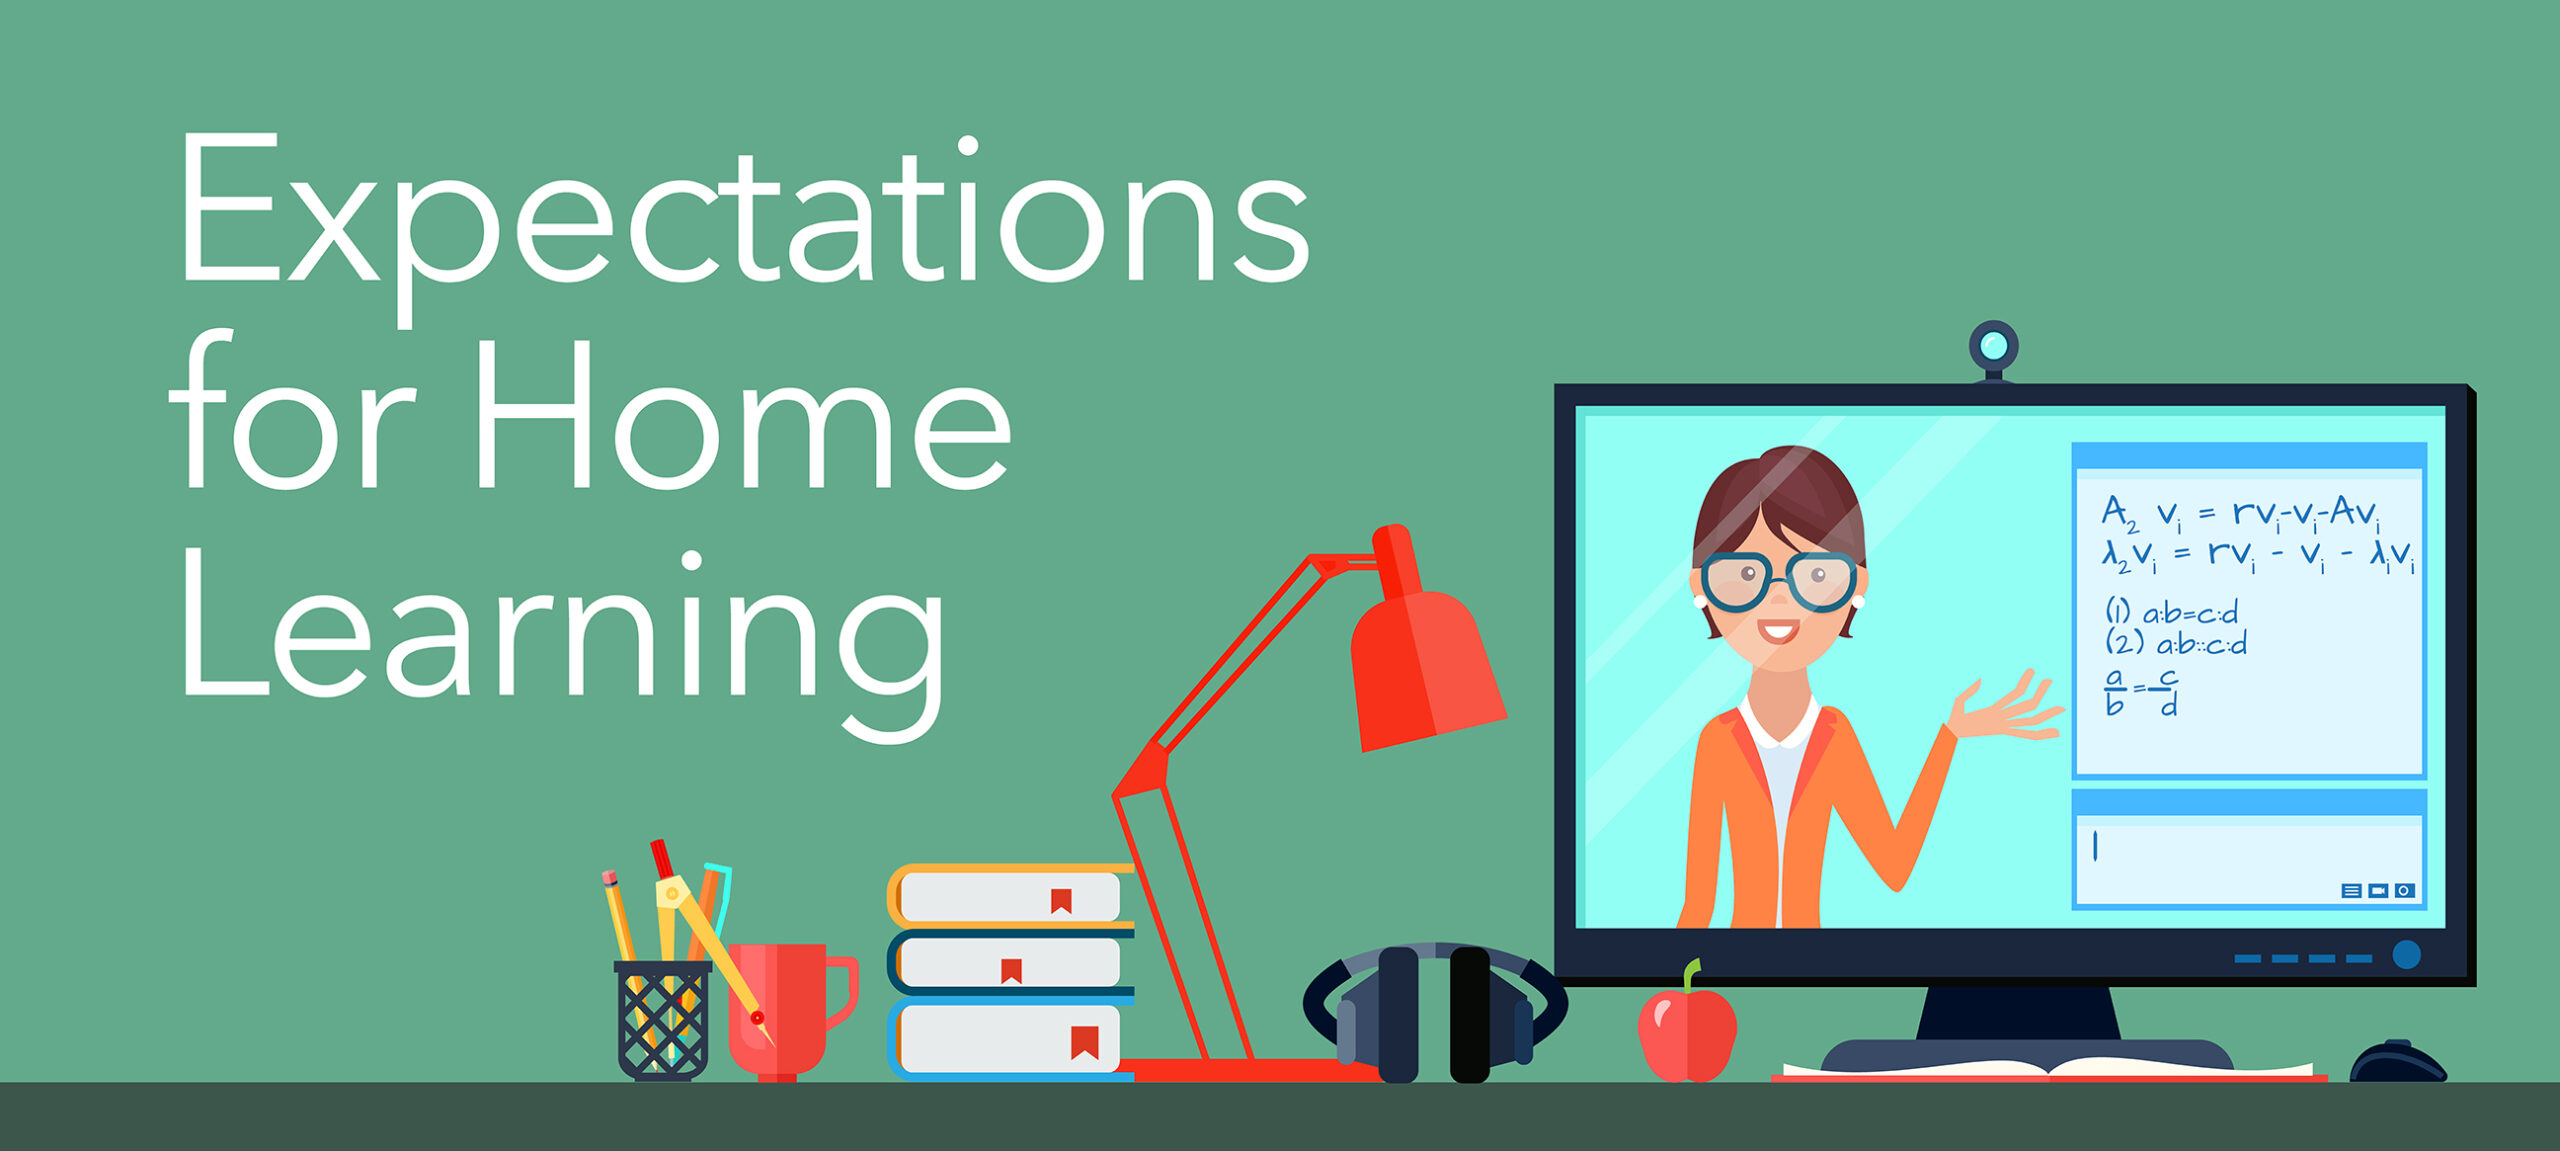 Home Learning Expectations